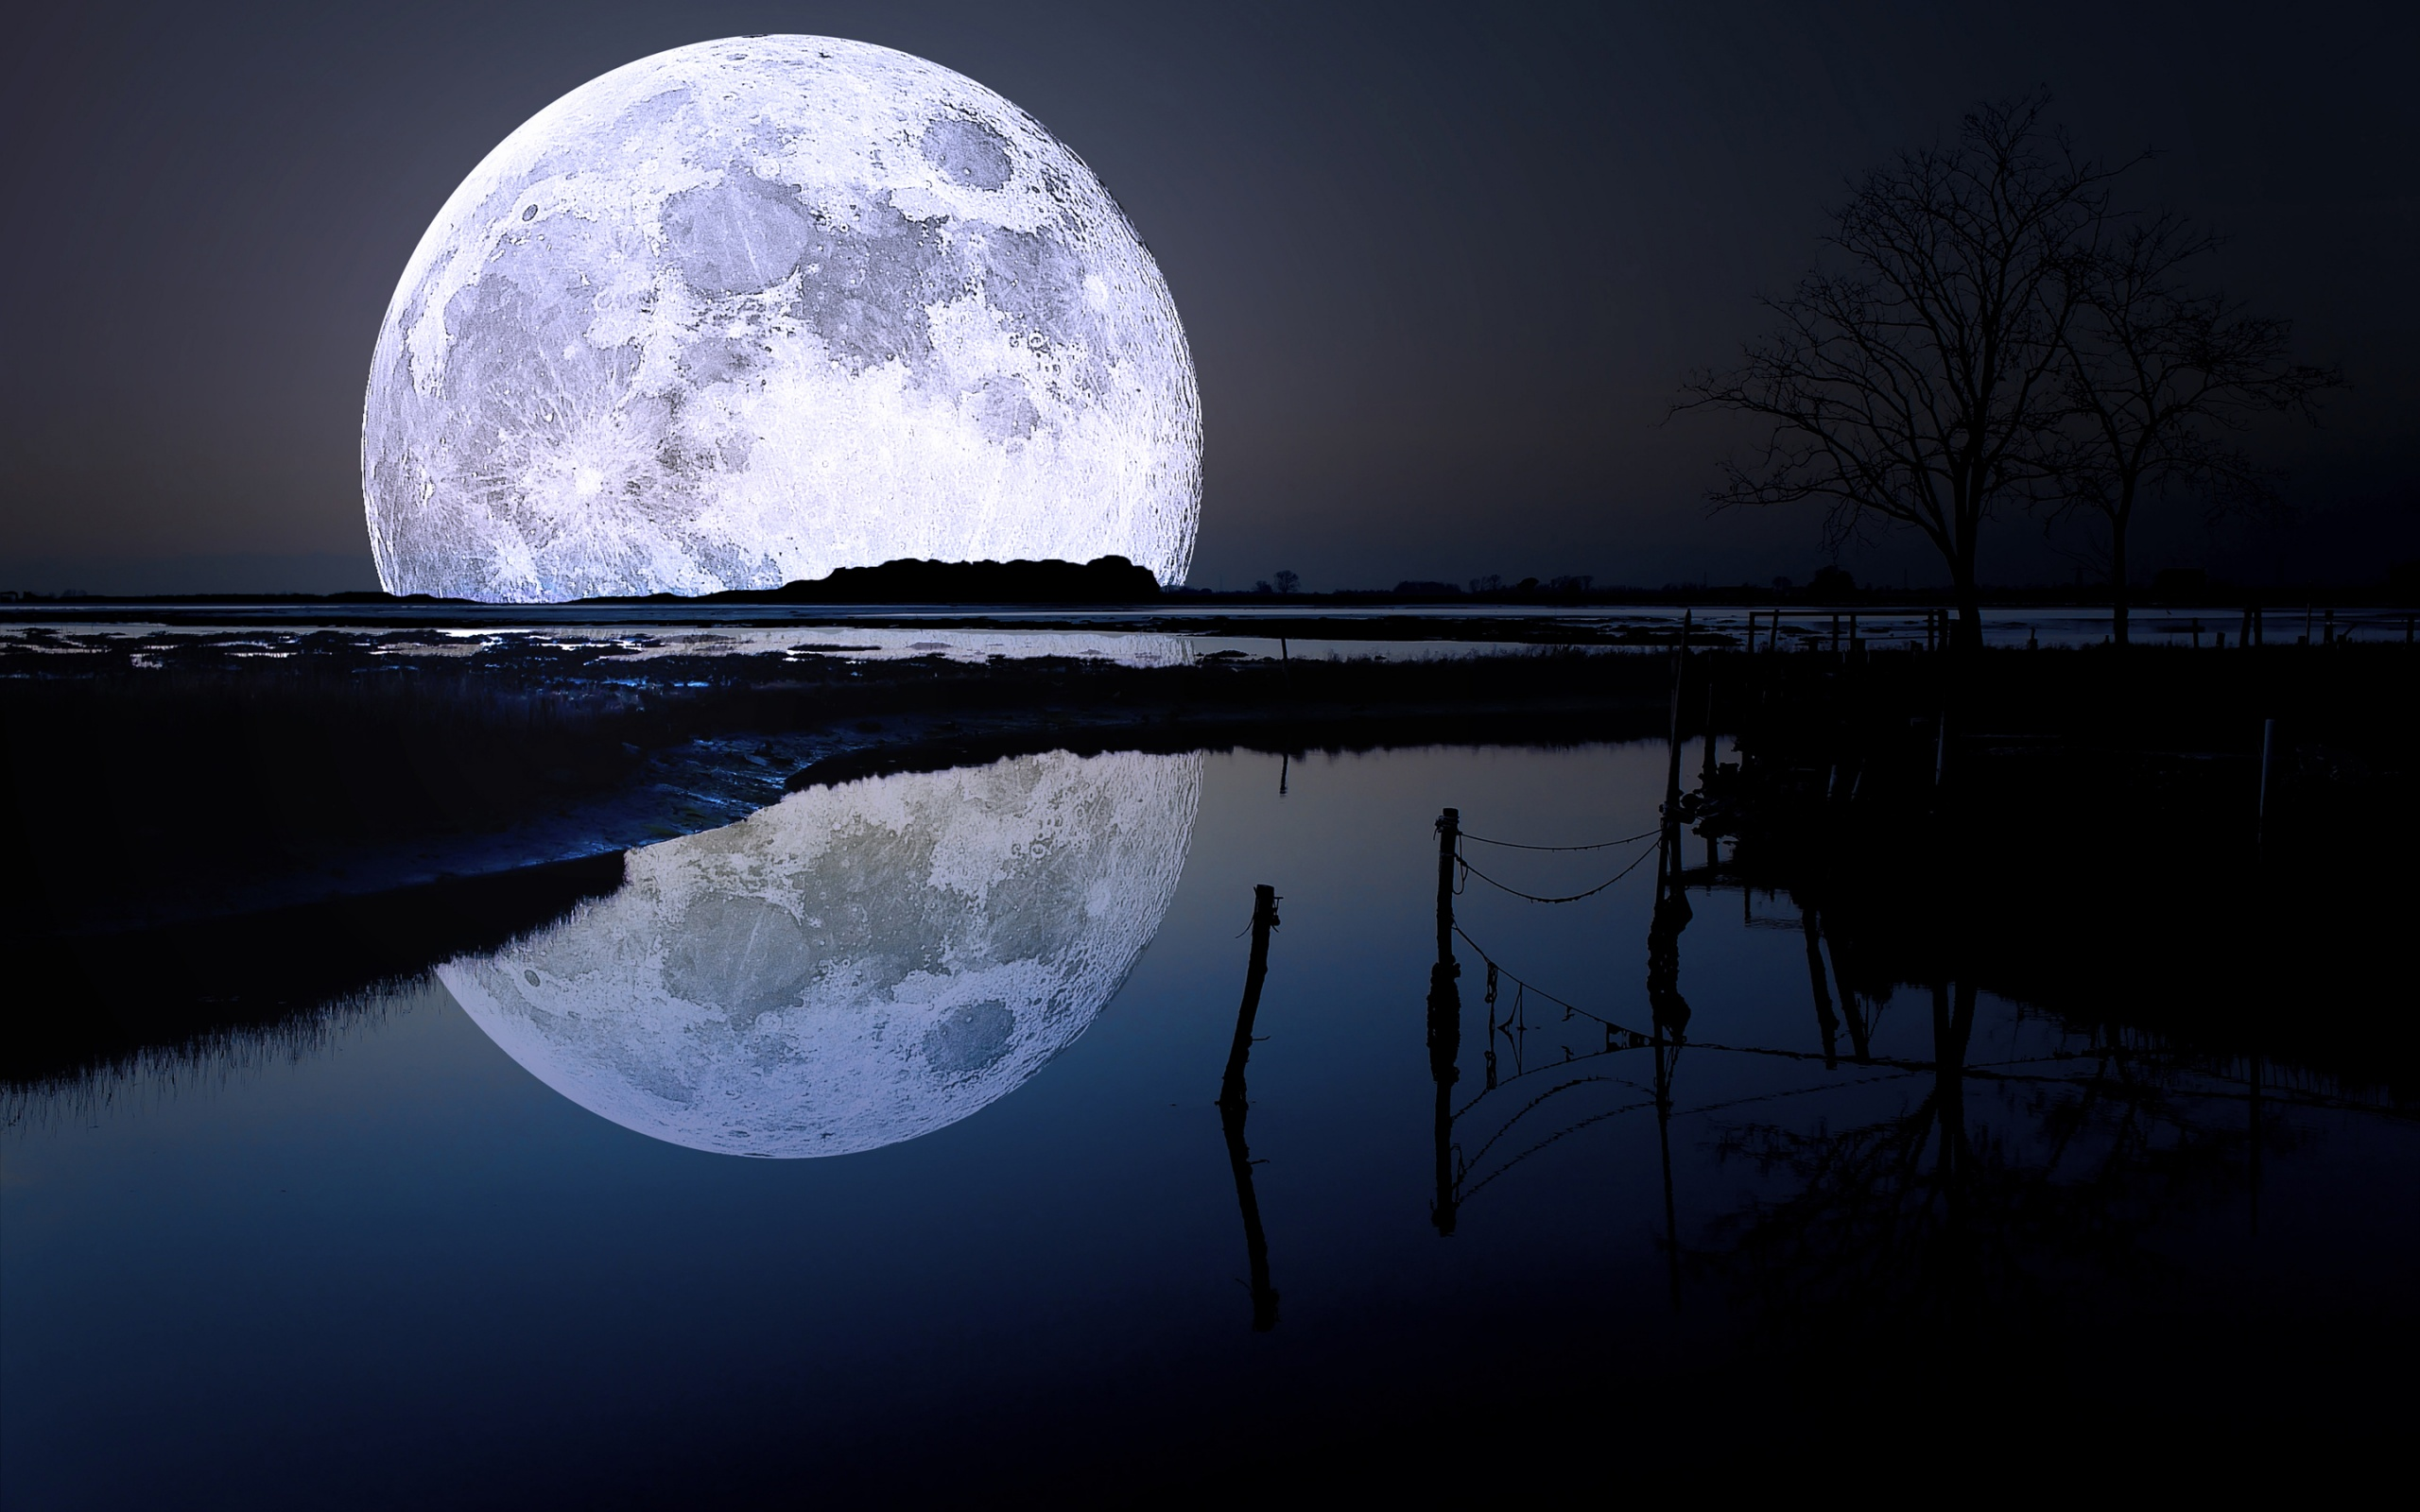 nature-beautiful-full-hd-moon-wallpapers-free - hd wallpaper